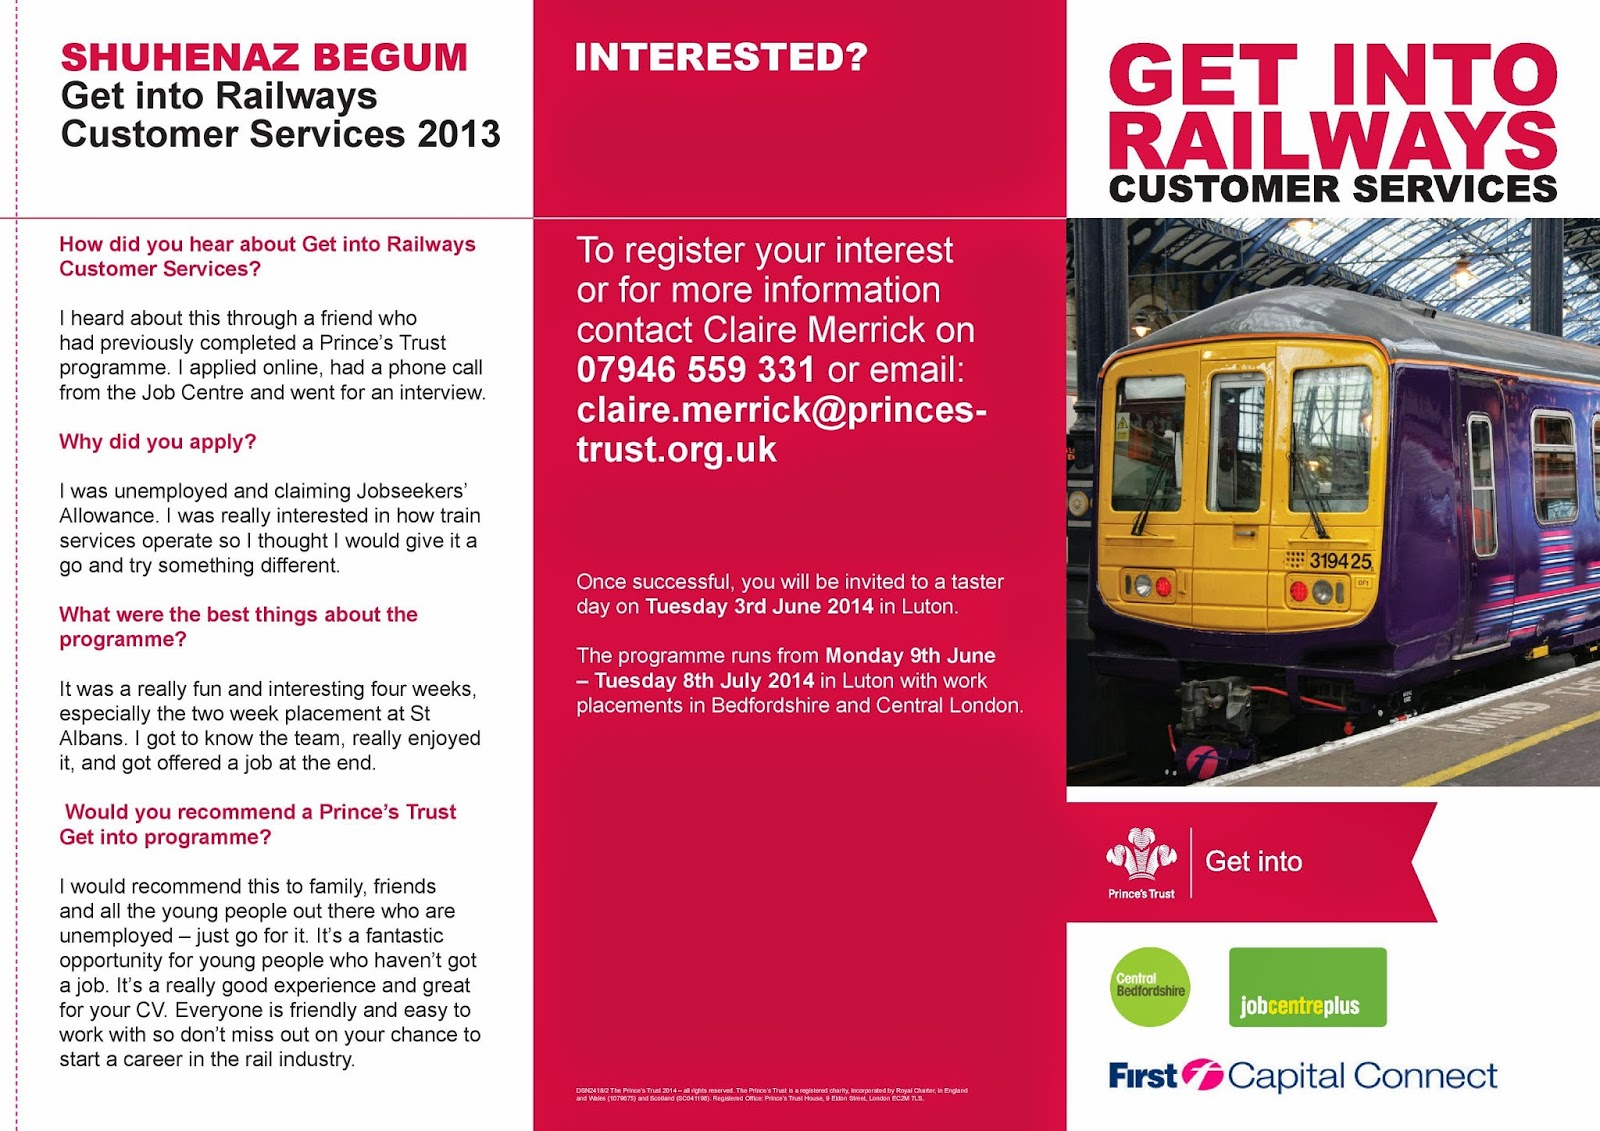 signposts start over get into railways it is a training programme allowing you to gain qualifications develop your cv and work skills and even the possibility of securing a job first